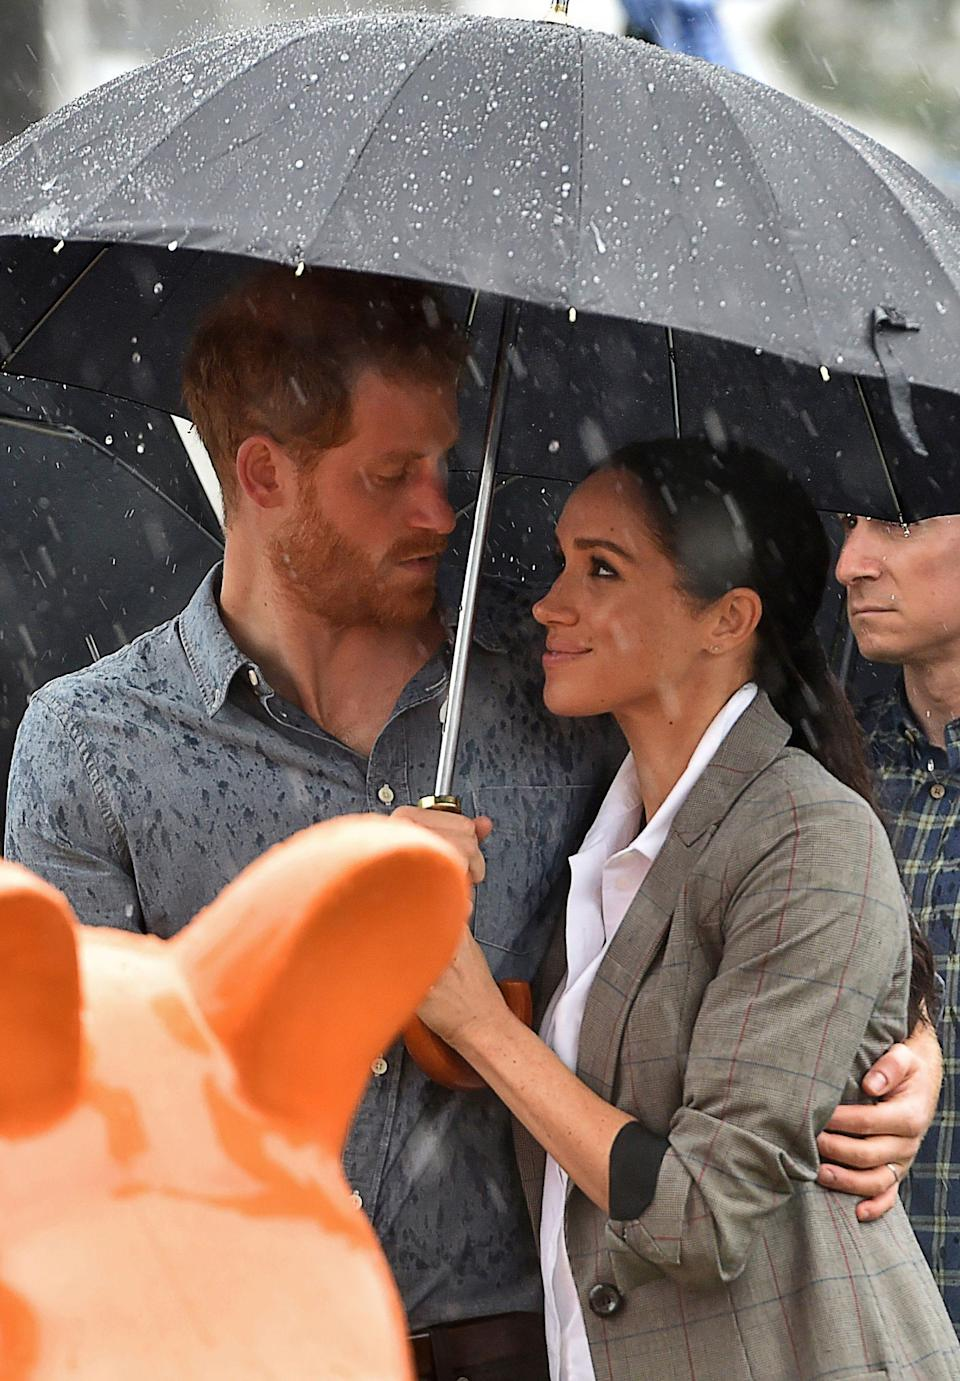 Prince Harry and Meghan Markle share an umbrella in Australia in October 2018.